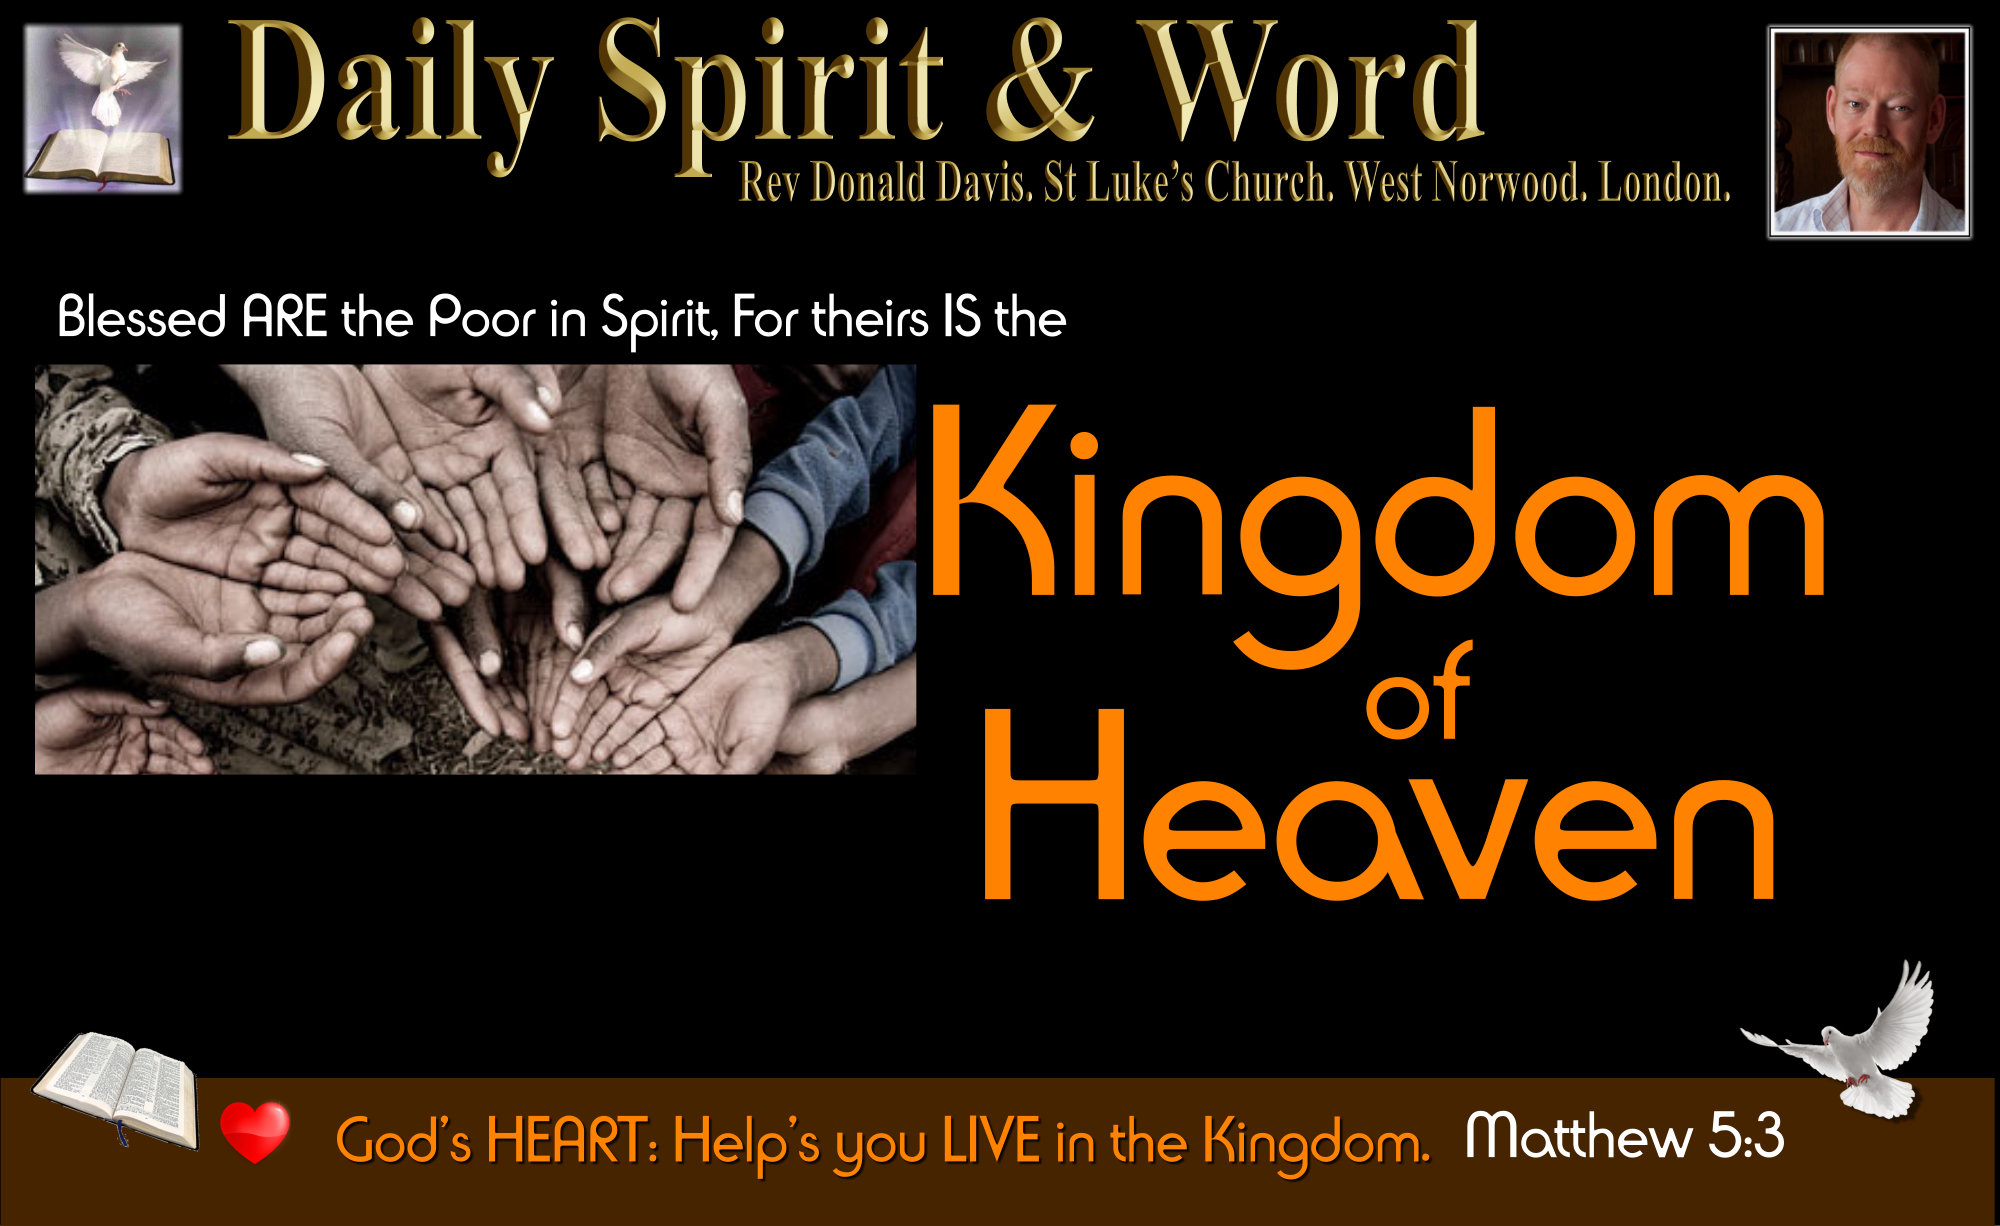 recognising our Spiritual Poverty is Key to the Kingdom of Heaven.